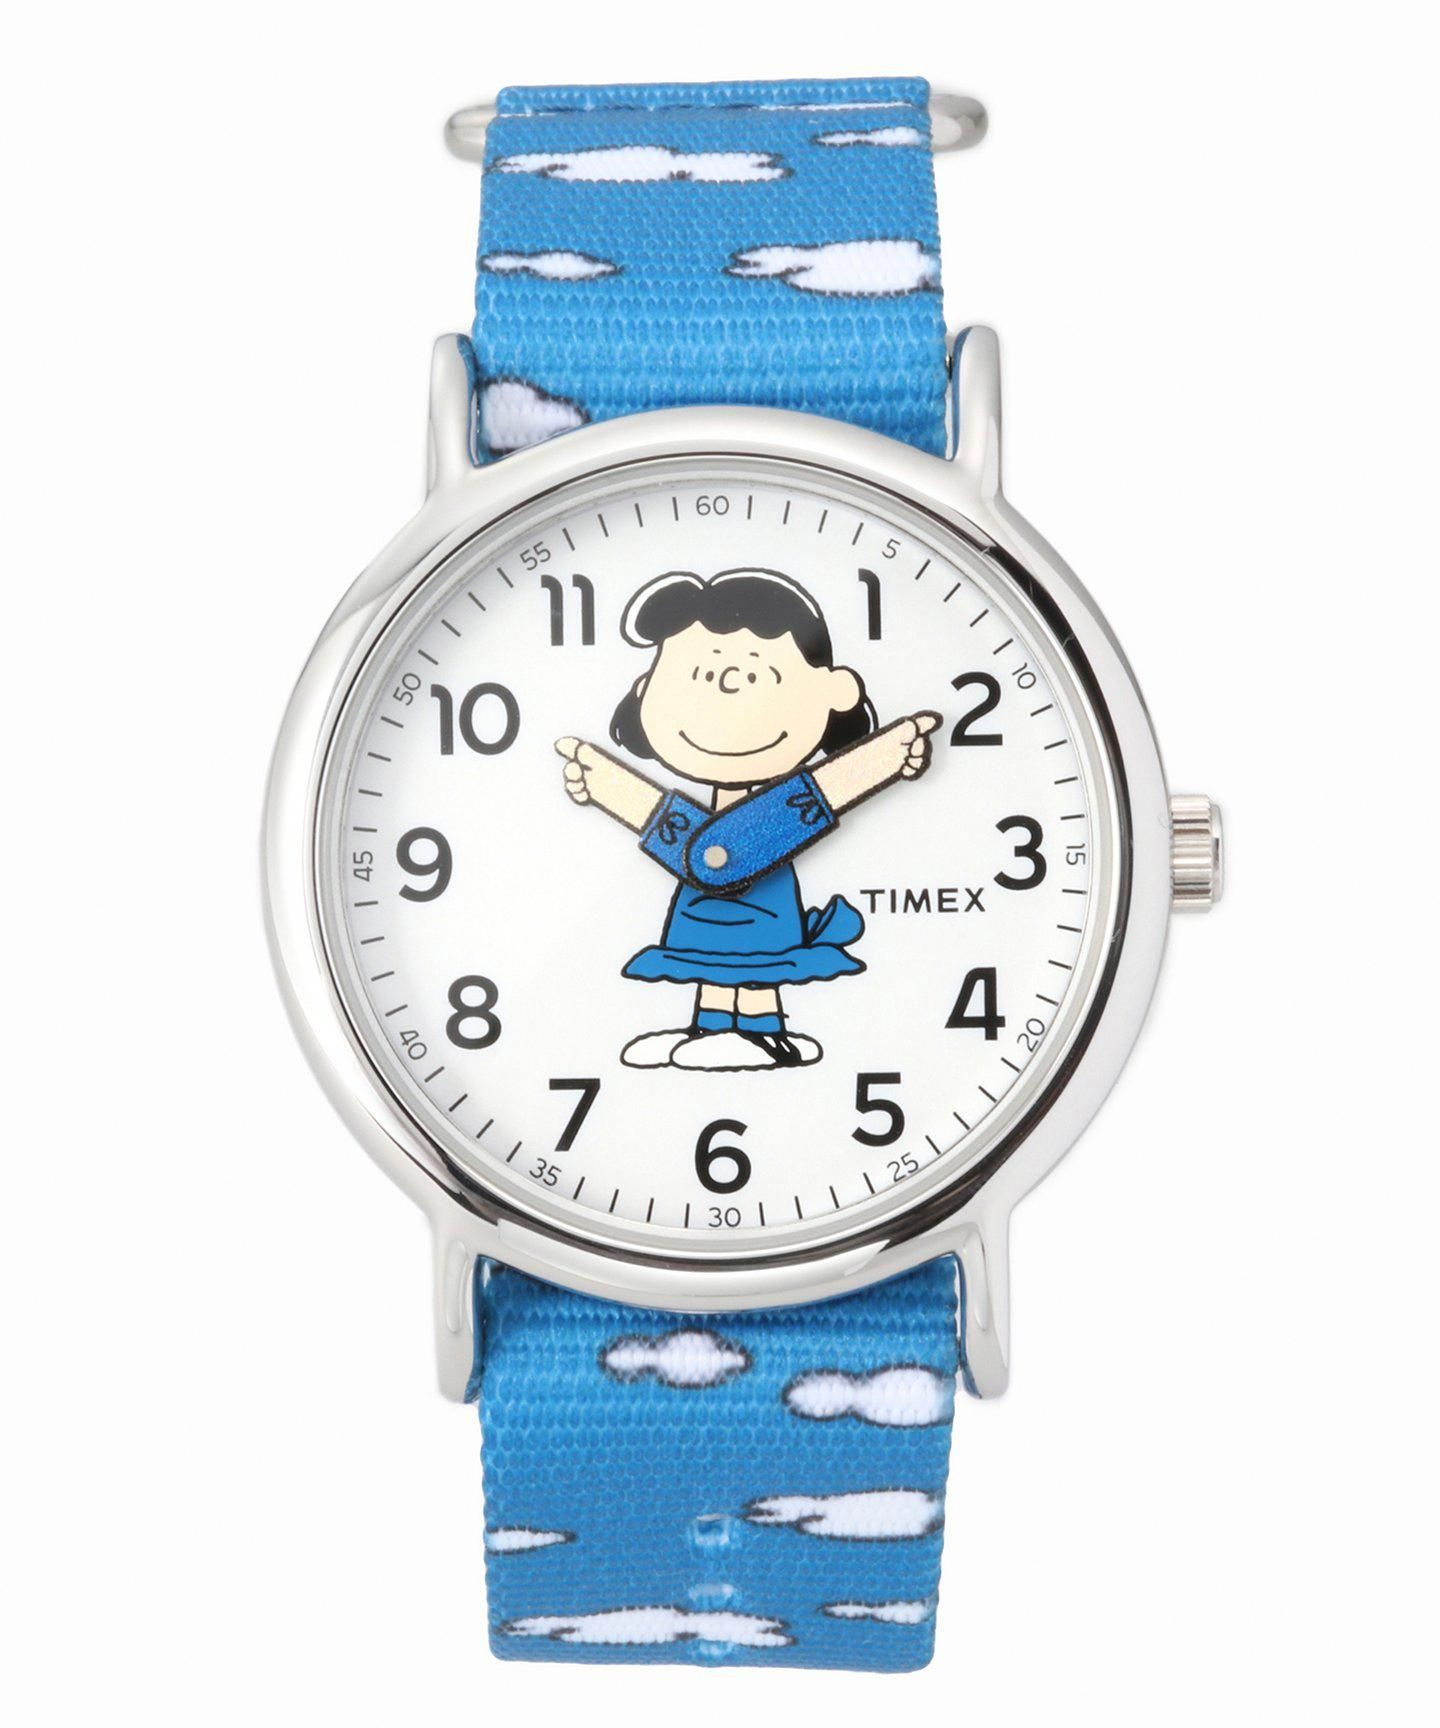 HIROB TIMEX xPEANUTS LUCY Timex, Leather watch, Accessories